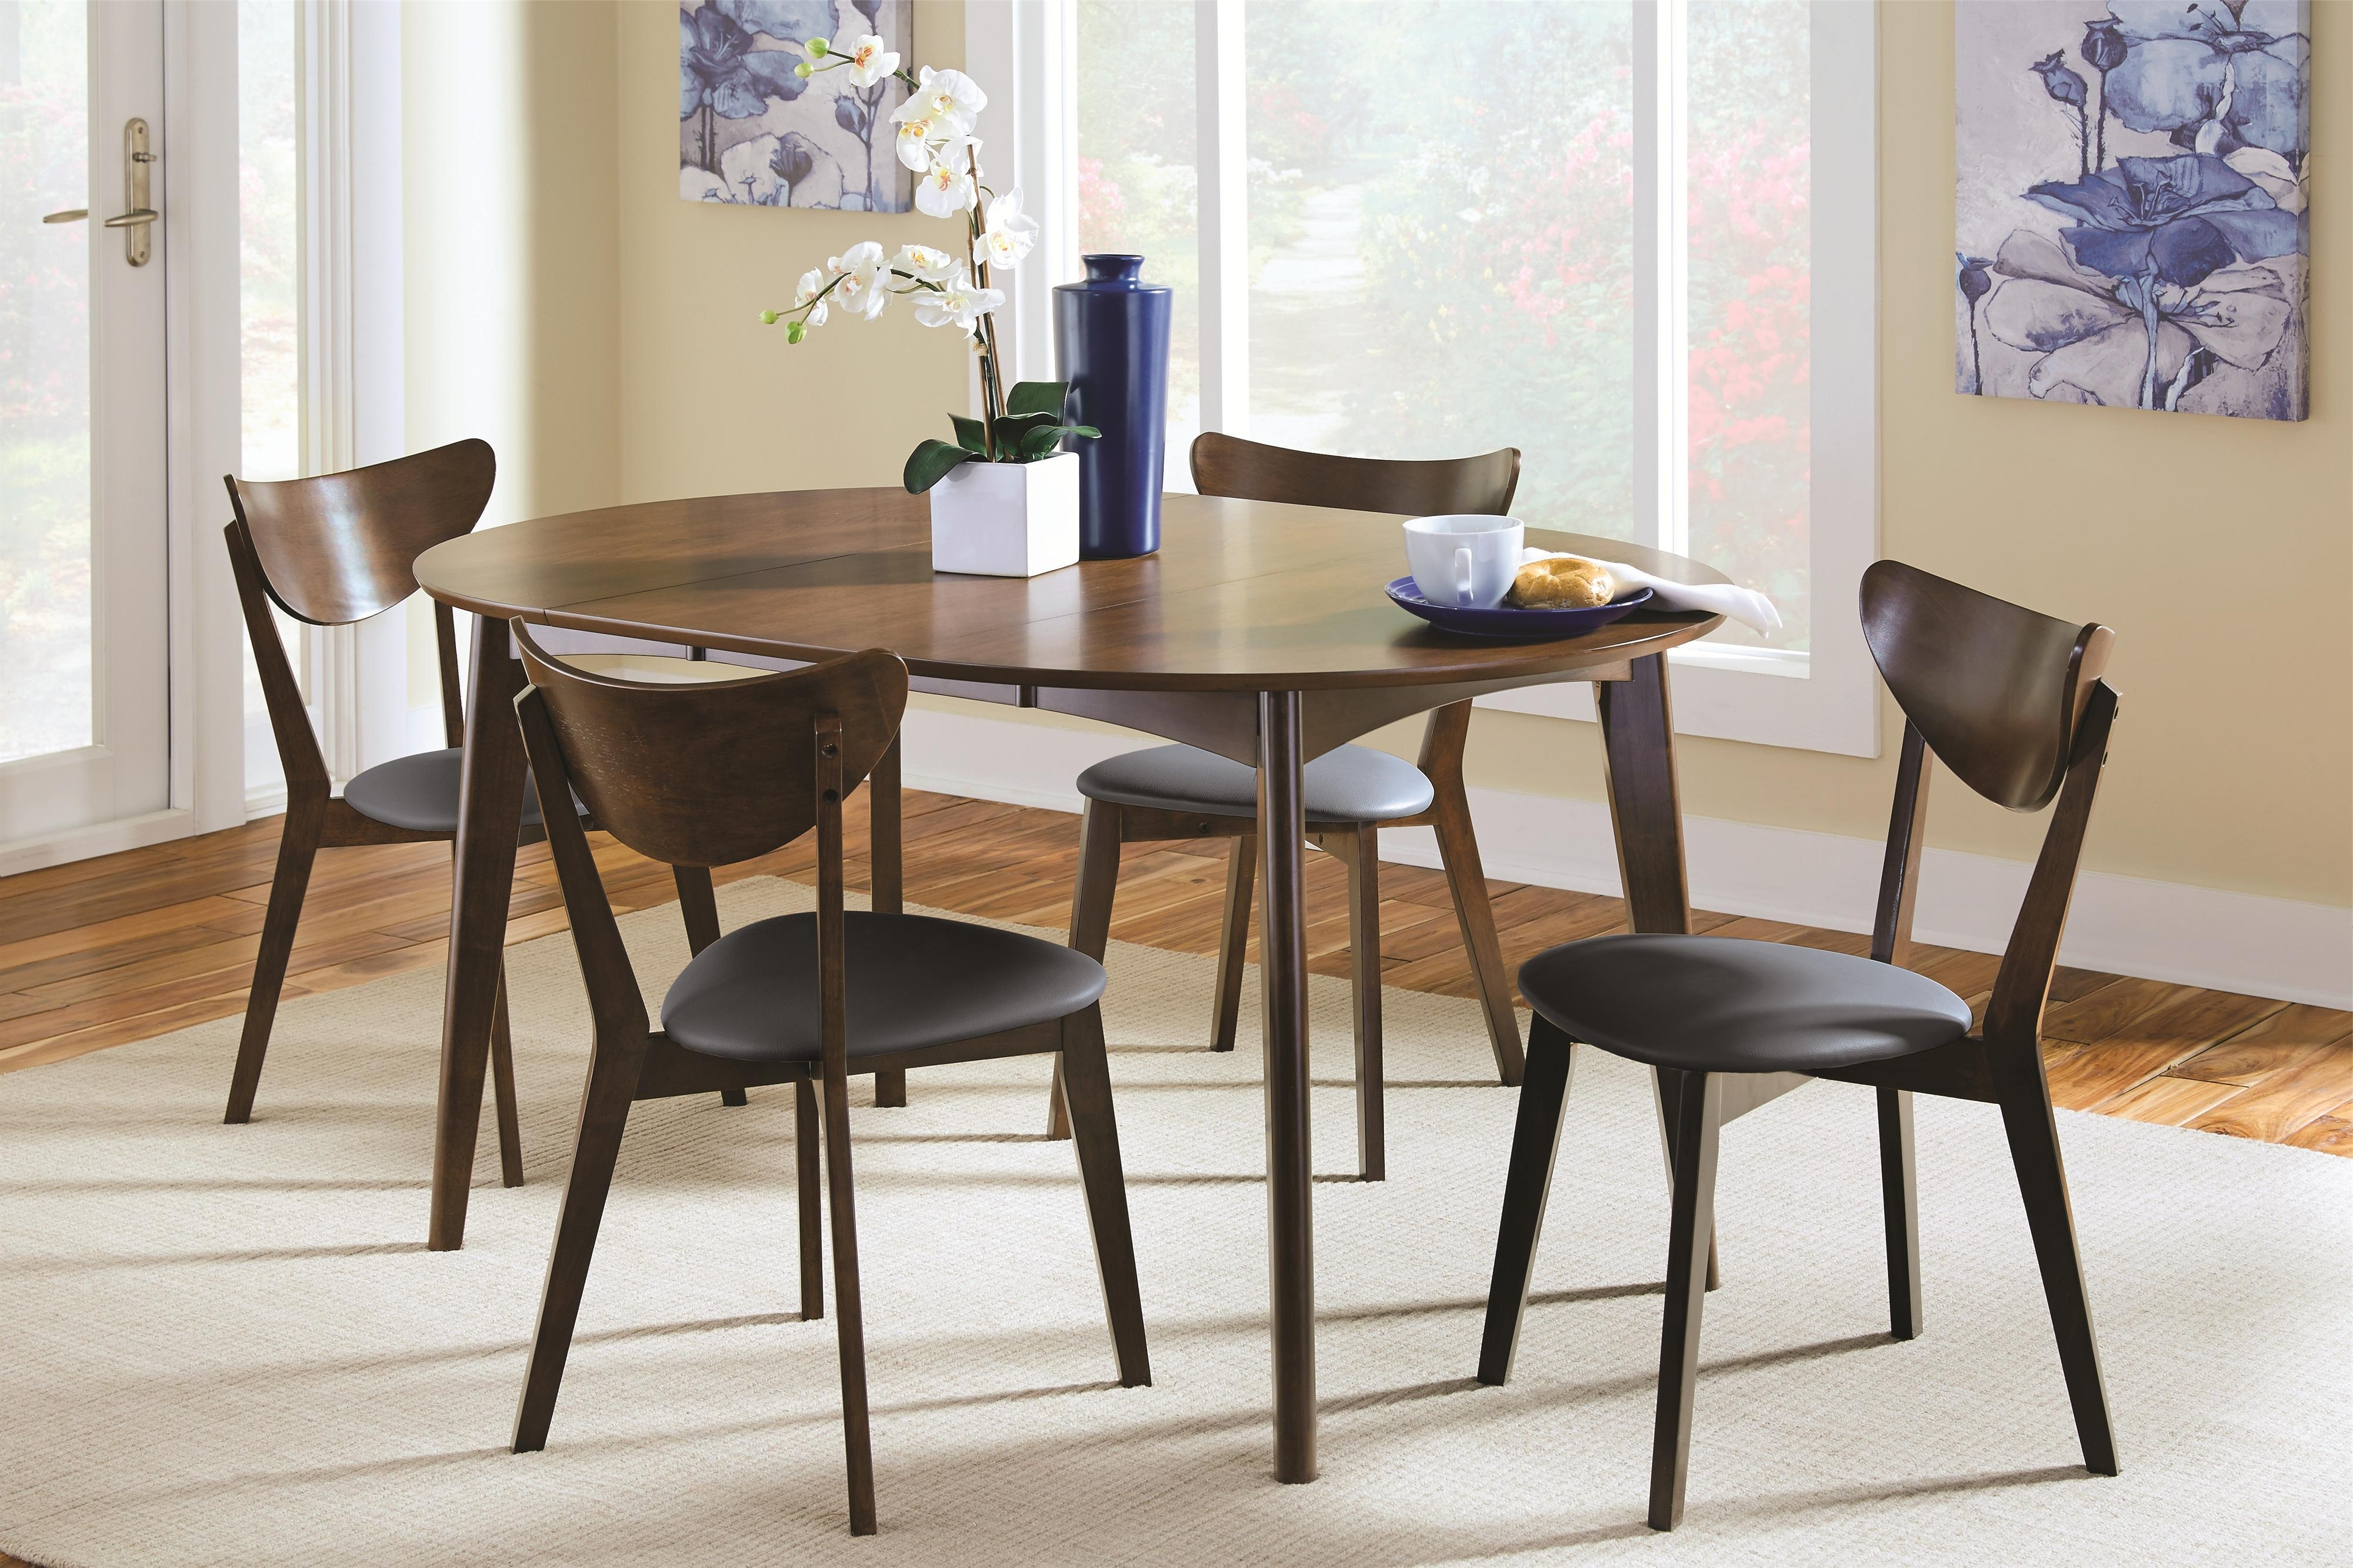 Contemporary Dining Room Tables And Chairs Regarding 2017 Coaster Malone Mid Century Modern 5 Piece Solid Wood Dining Set (Gallery 3 of 25)